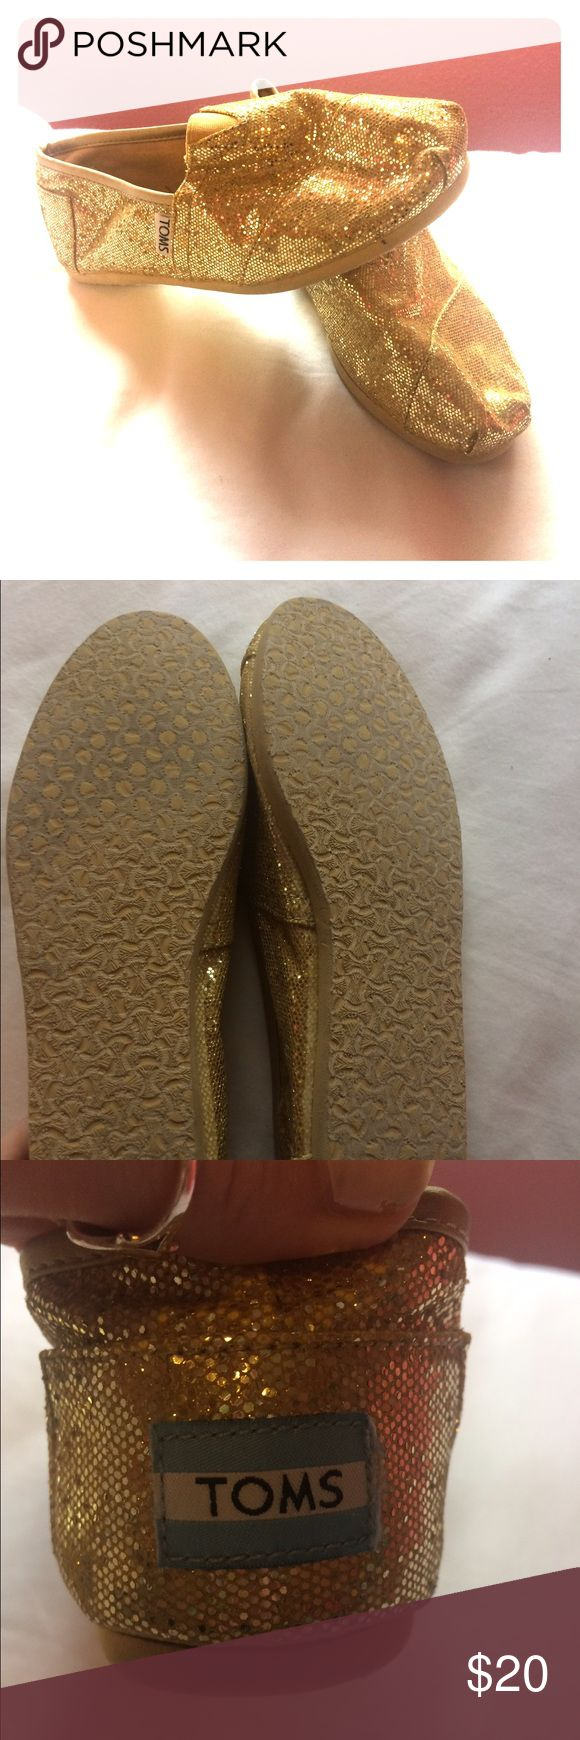 Gold Glitter Toms Near perfect condition - as you can see from the bottoms. Very cute! TOMS Shoes